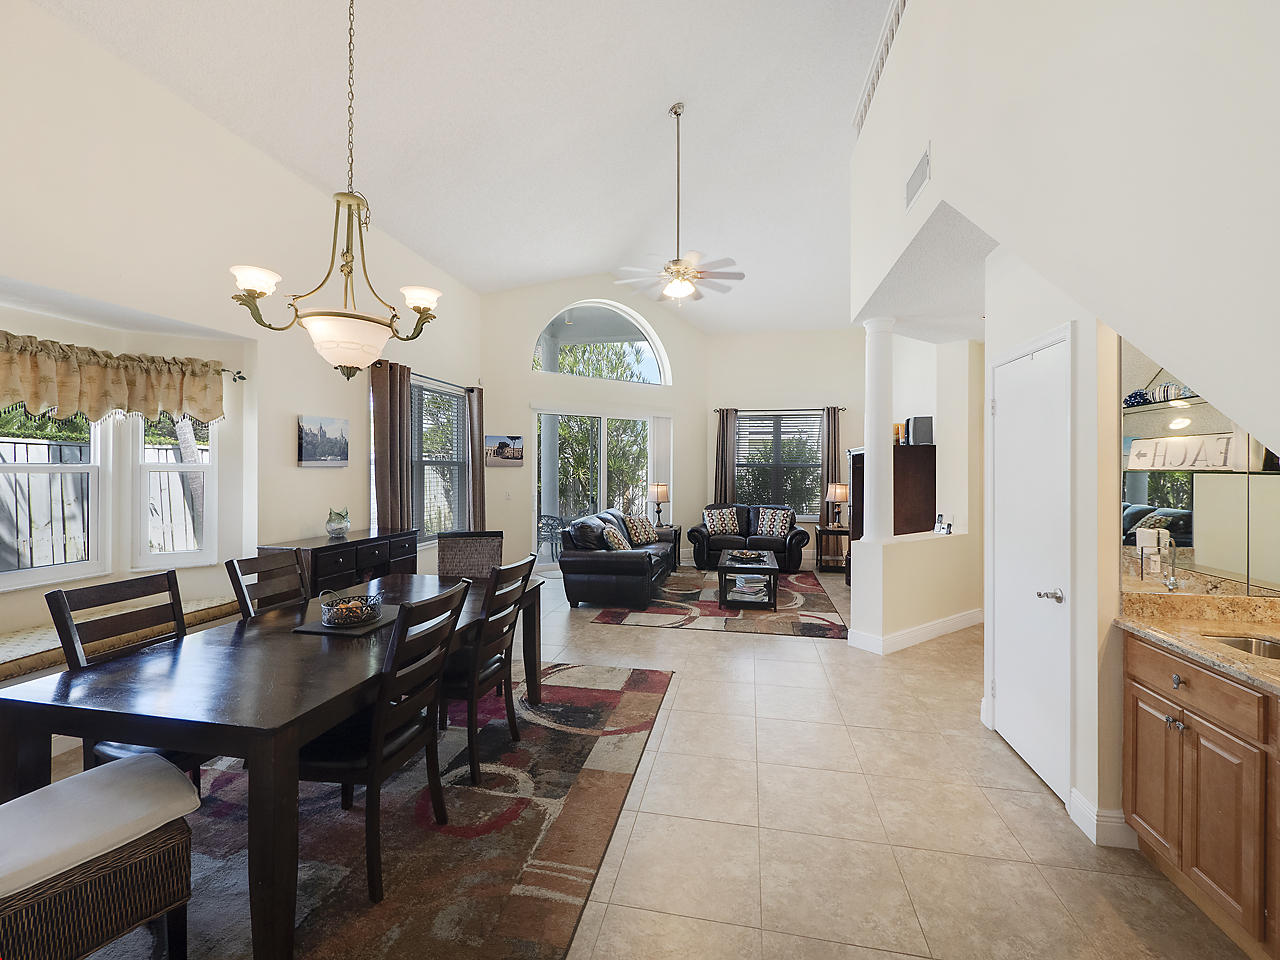 SEA COLONY HOMES FOR SALE